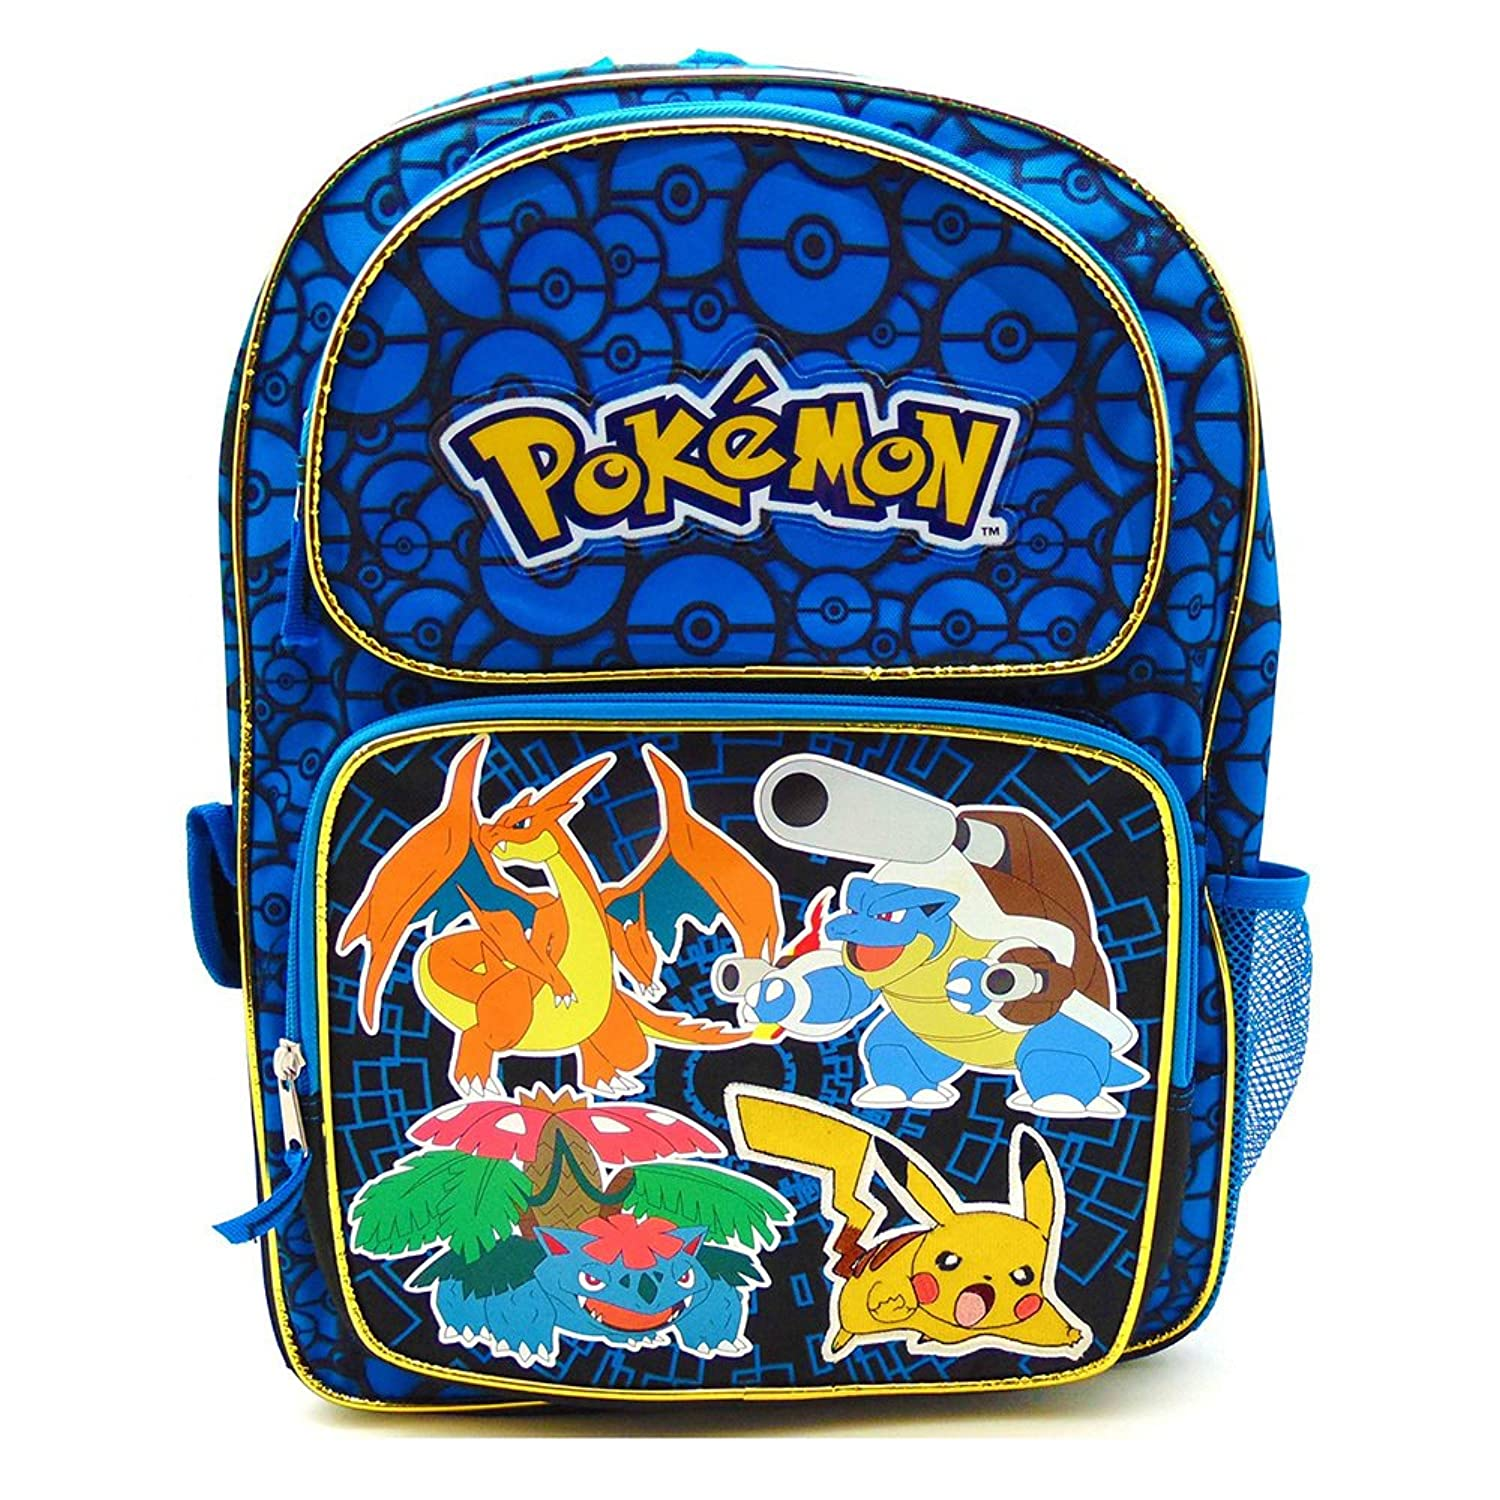 "Pokemon Large 16/"" Backpack Girls or Boys School Book Bag Blue"